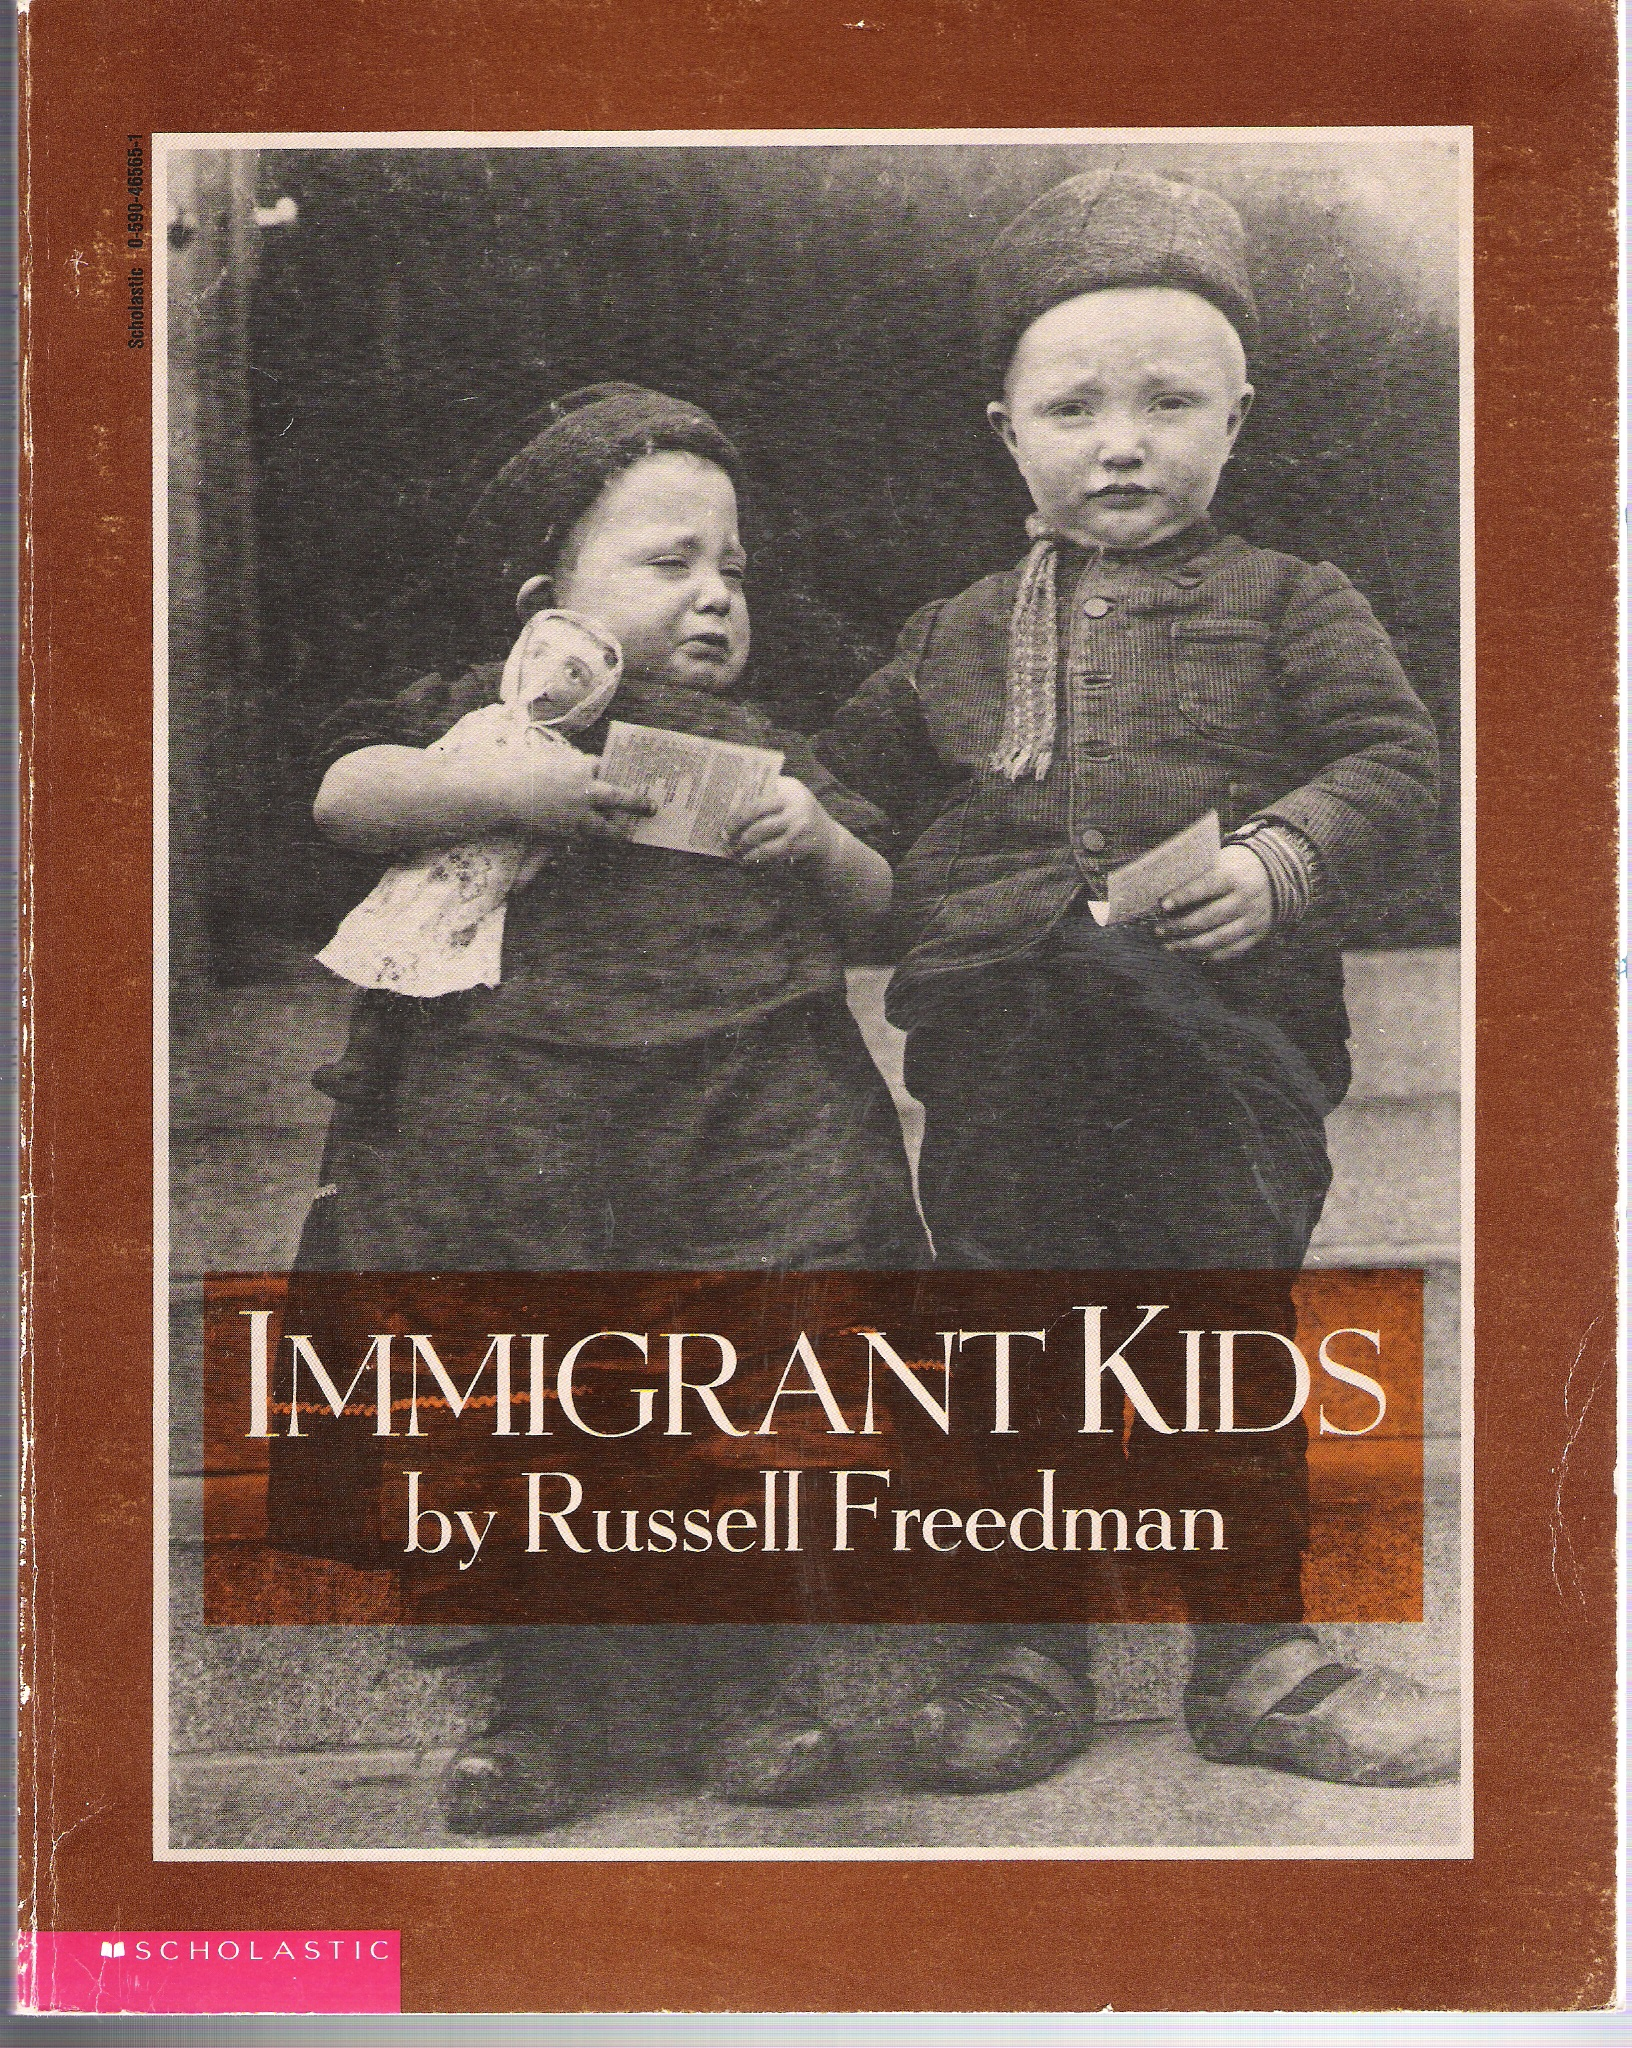 a review of immigrant kids by russell freedman Immigrant kids has 257 ratings and 55 reviews nicola said: reason for reading: read aloud to my son as part of his history curriculumrussell freedman.